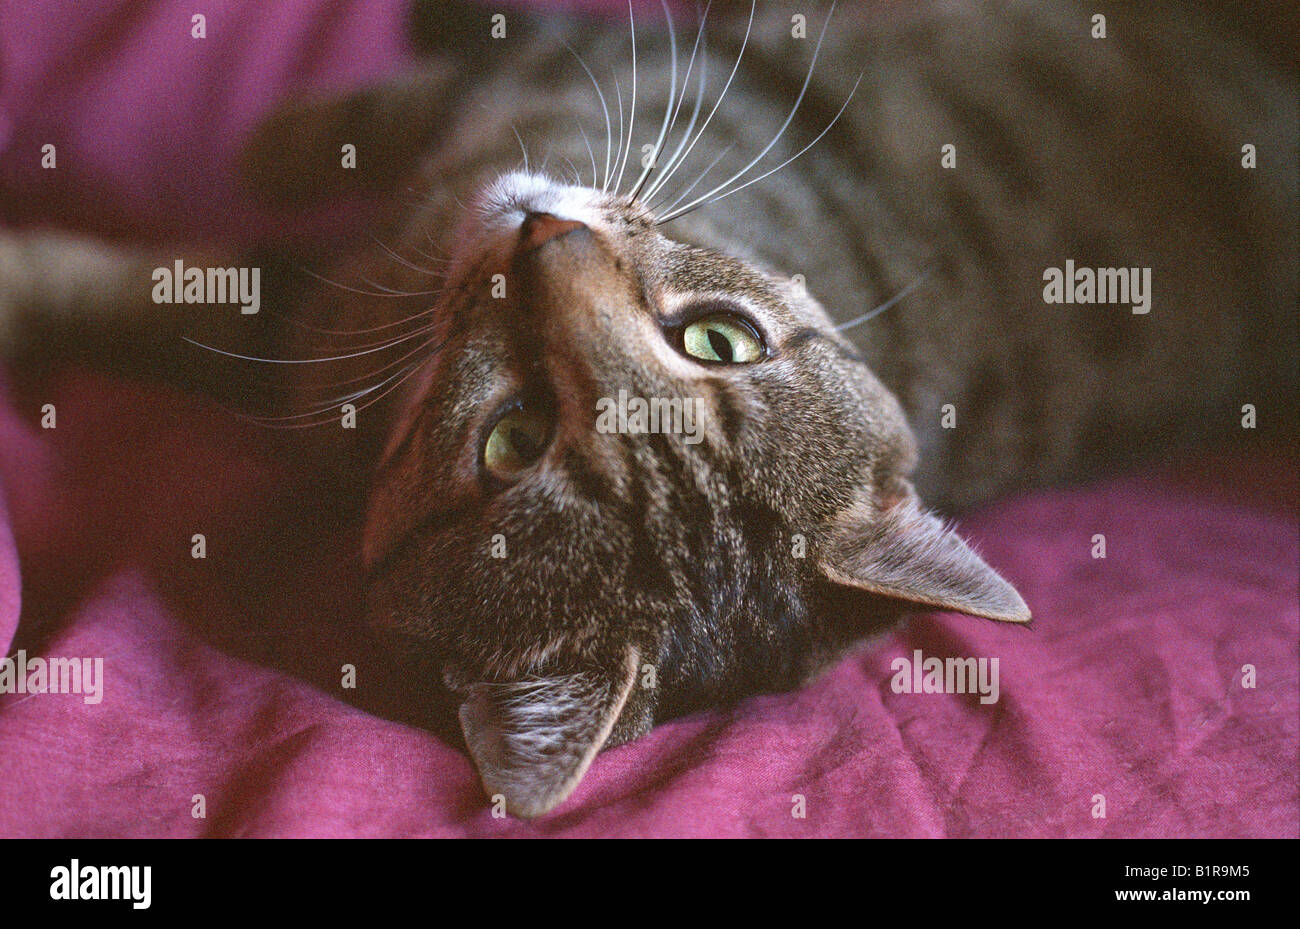 Head Shot Of Tabby Cat With White Chin Whiskers Relaxing Chilling Stock Photo Alamy